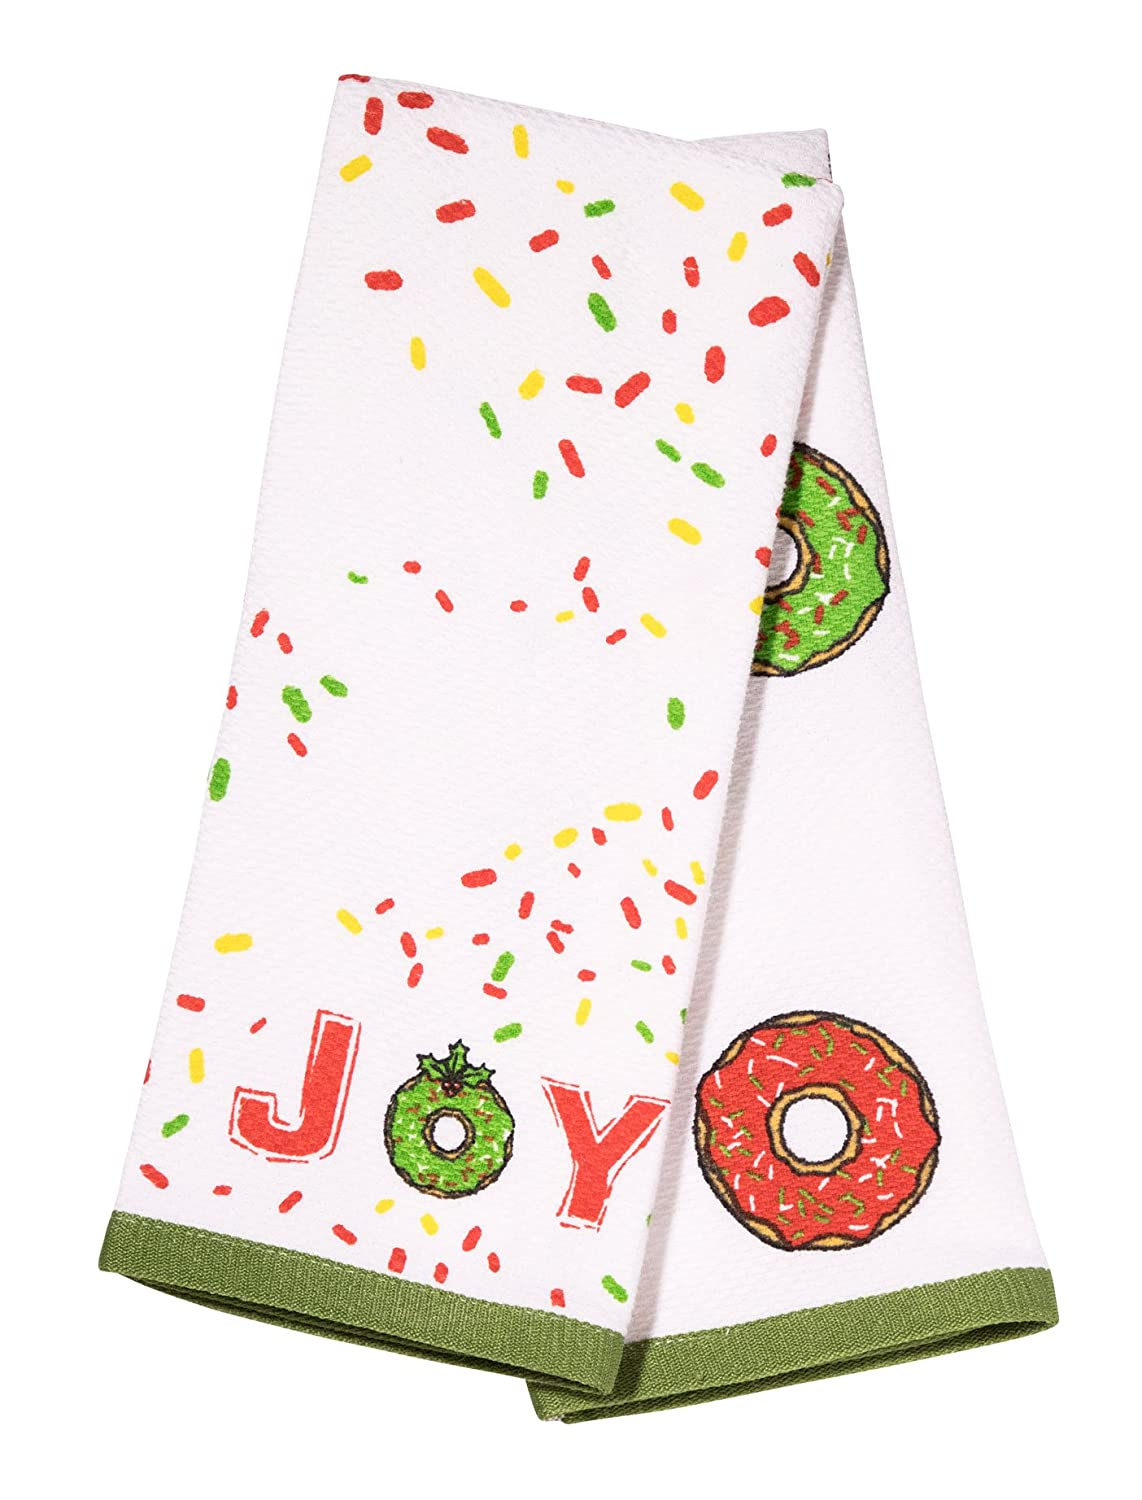 Balmont Collection Holiday Donuts Kitchen Towels 16 x 26 Multi Set of 2